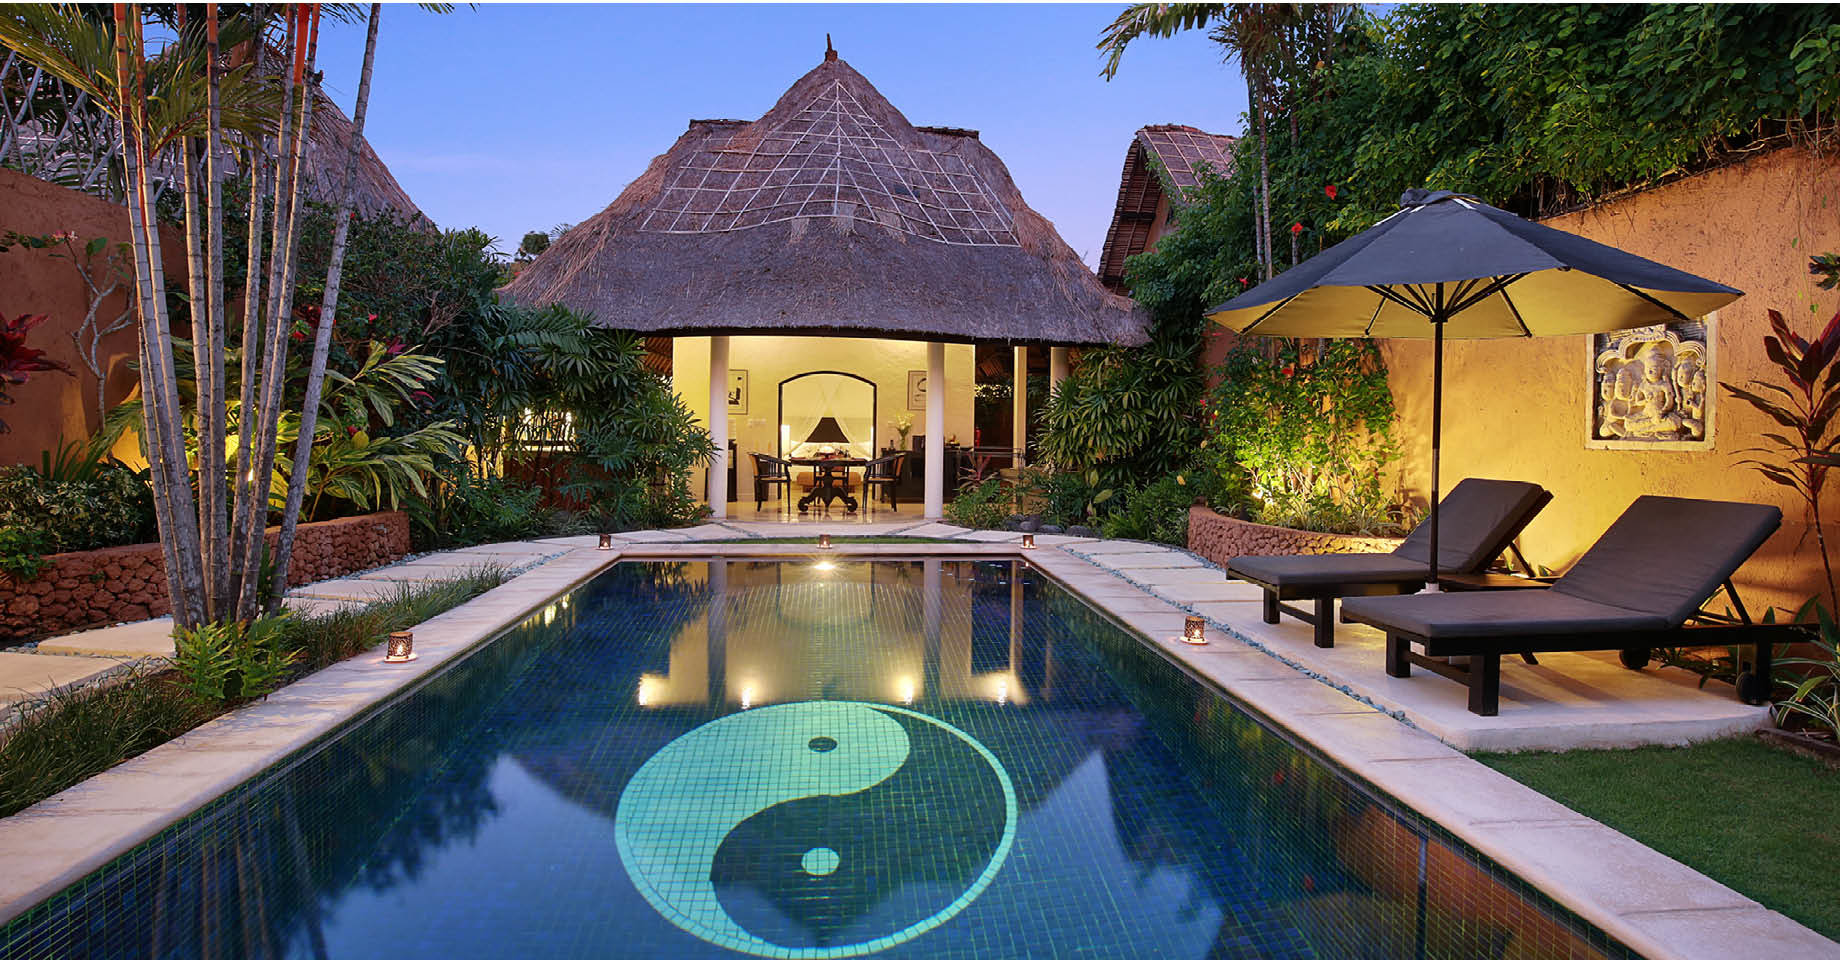 The Villas Bali, 1 bed pool villa